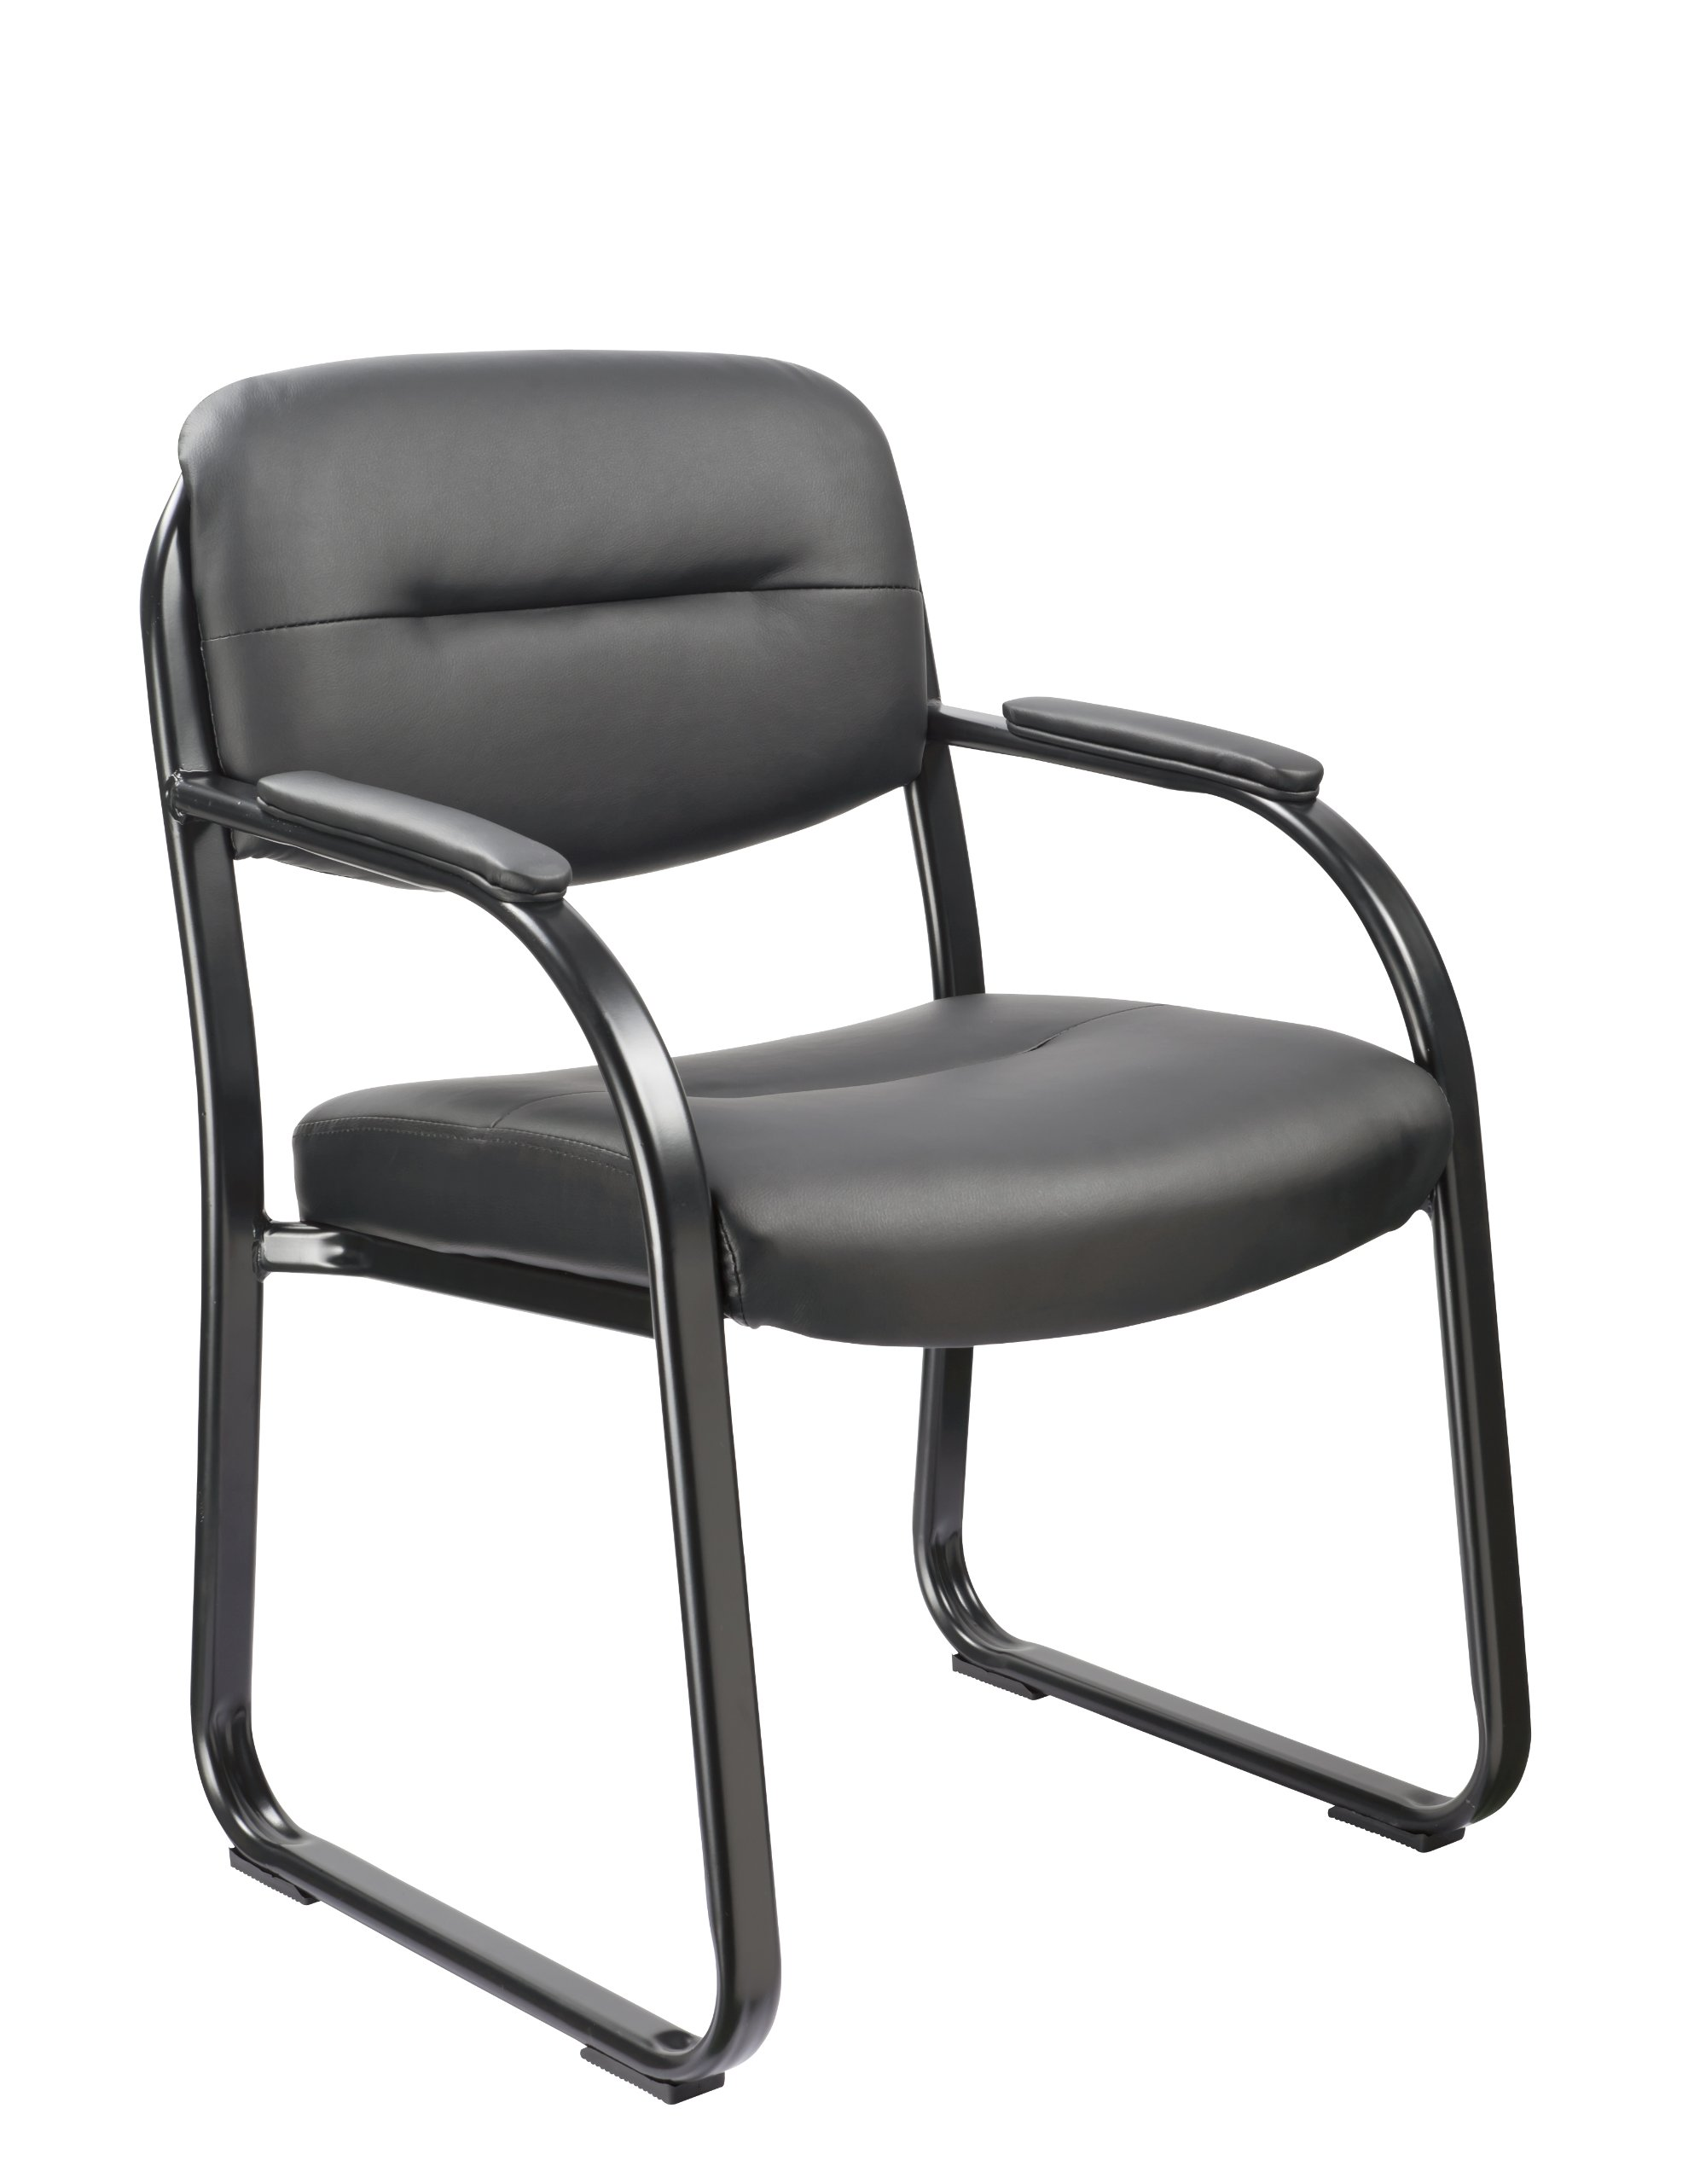 Office Factor Reception Room Executive Style Black Vinyl Guest Chair with Padded Seat, Back, Arms and Sled Base-Comfortable Seating for Visitors